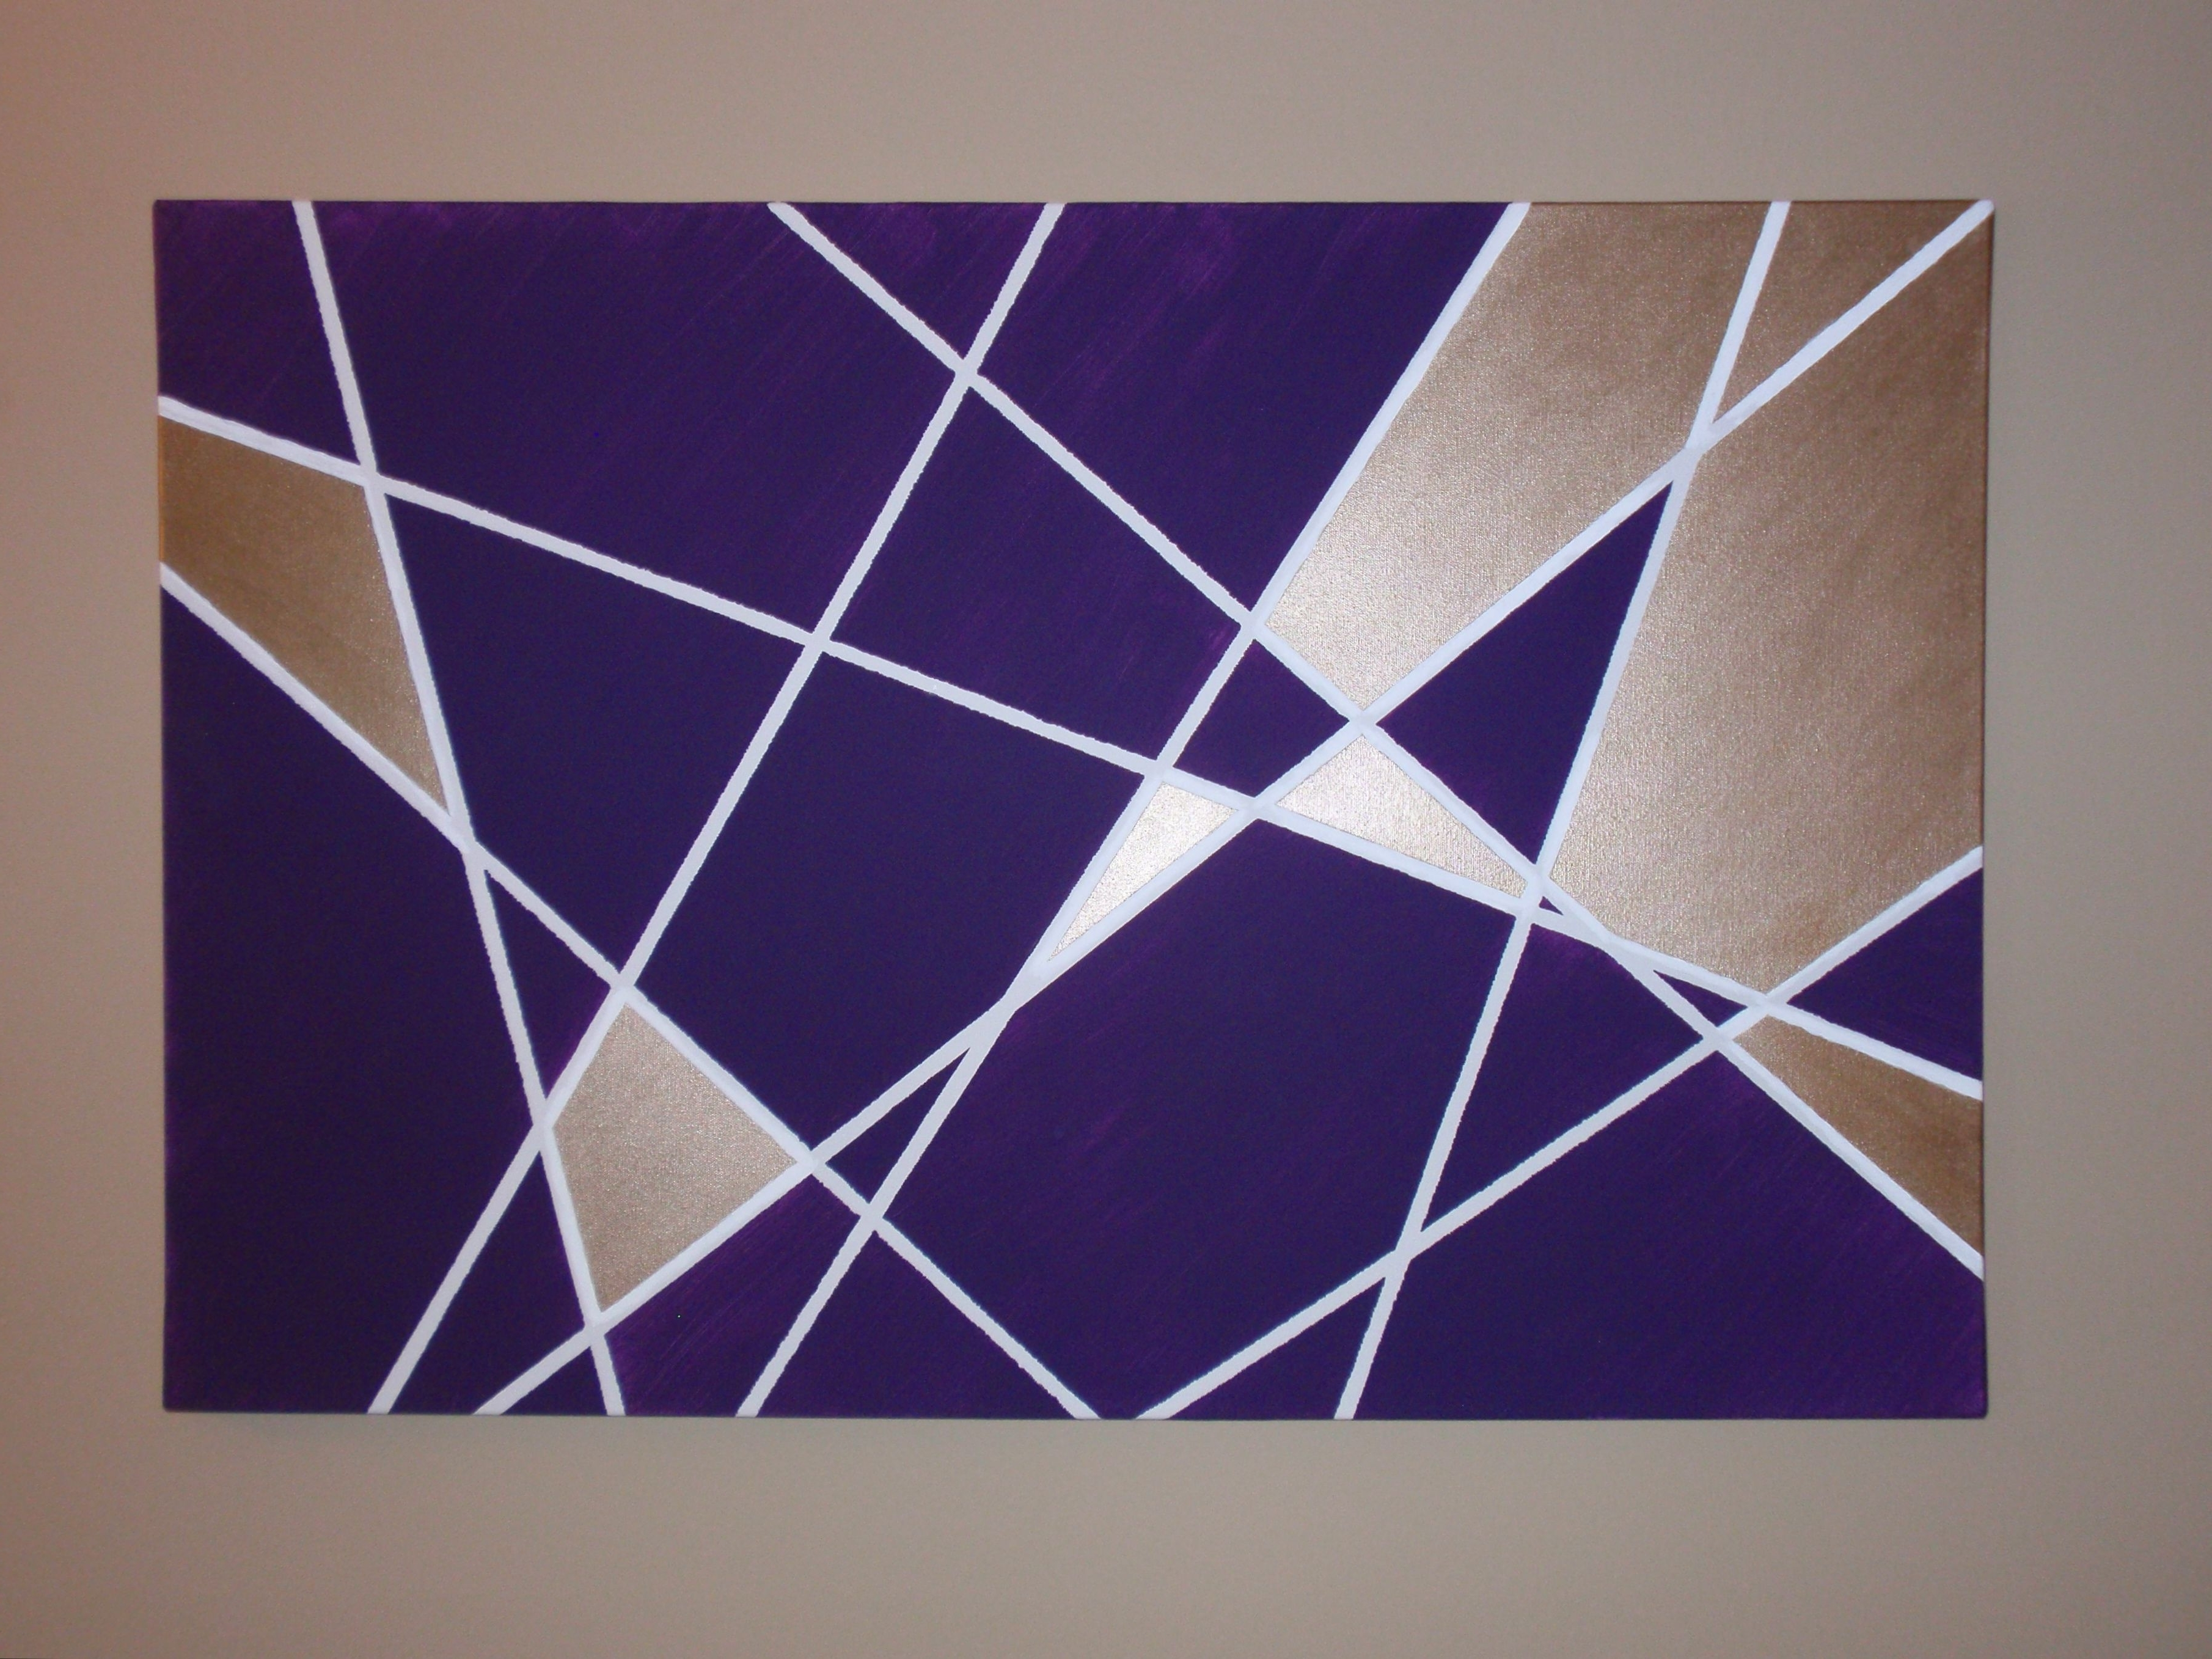 Pinterest Within Most Up To Date Geometric Wall Art (View 10 of 15)